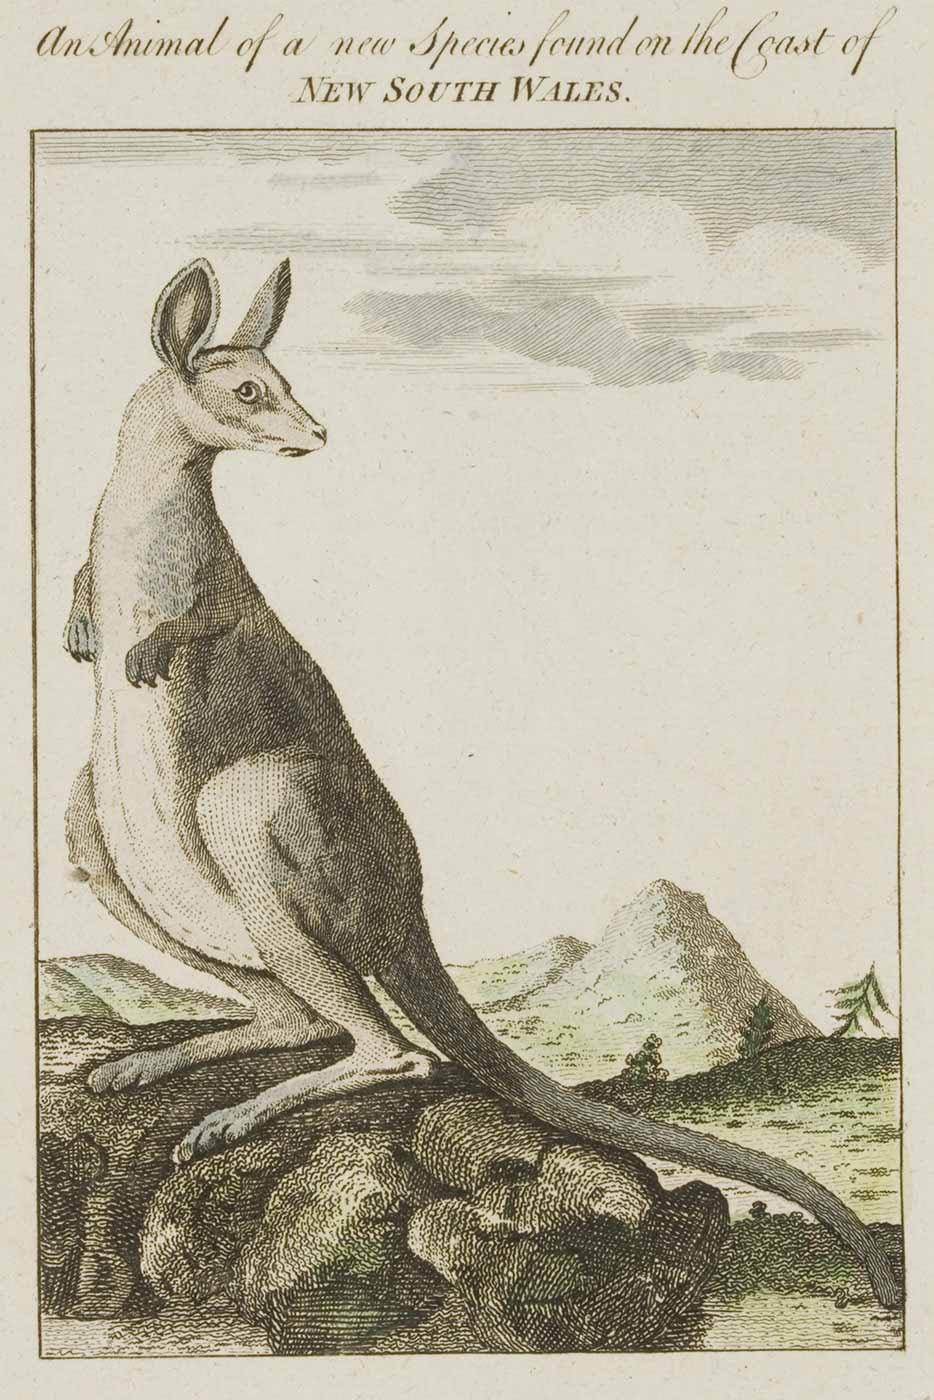 Image of kangaroo standing on a mound or rocks with mountains and trees in the background. Text across the top reads 'An Animal of a new Species found on the Coast of NEW SOUTH WALES.' - click to view larger image